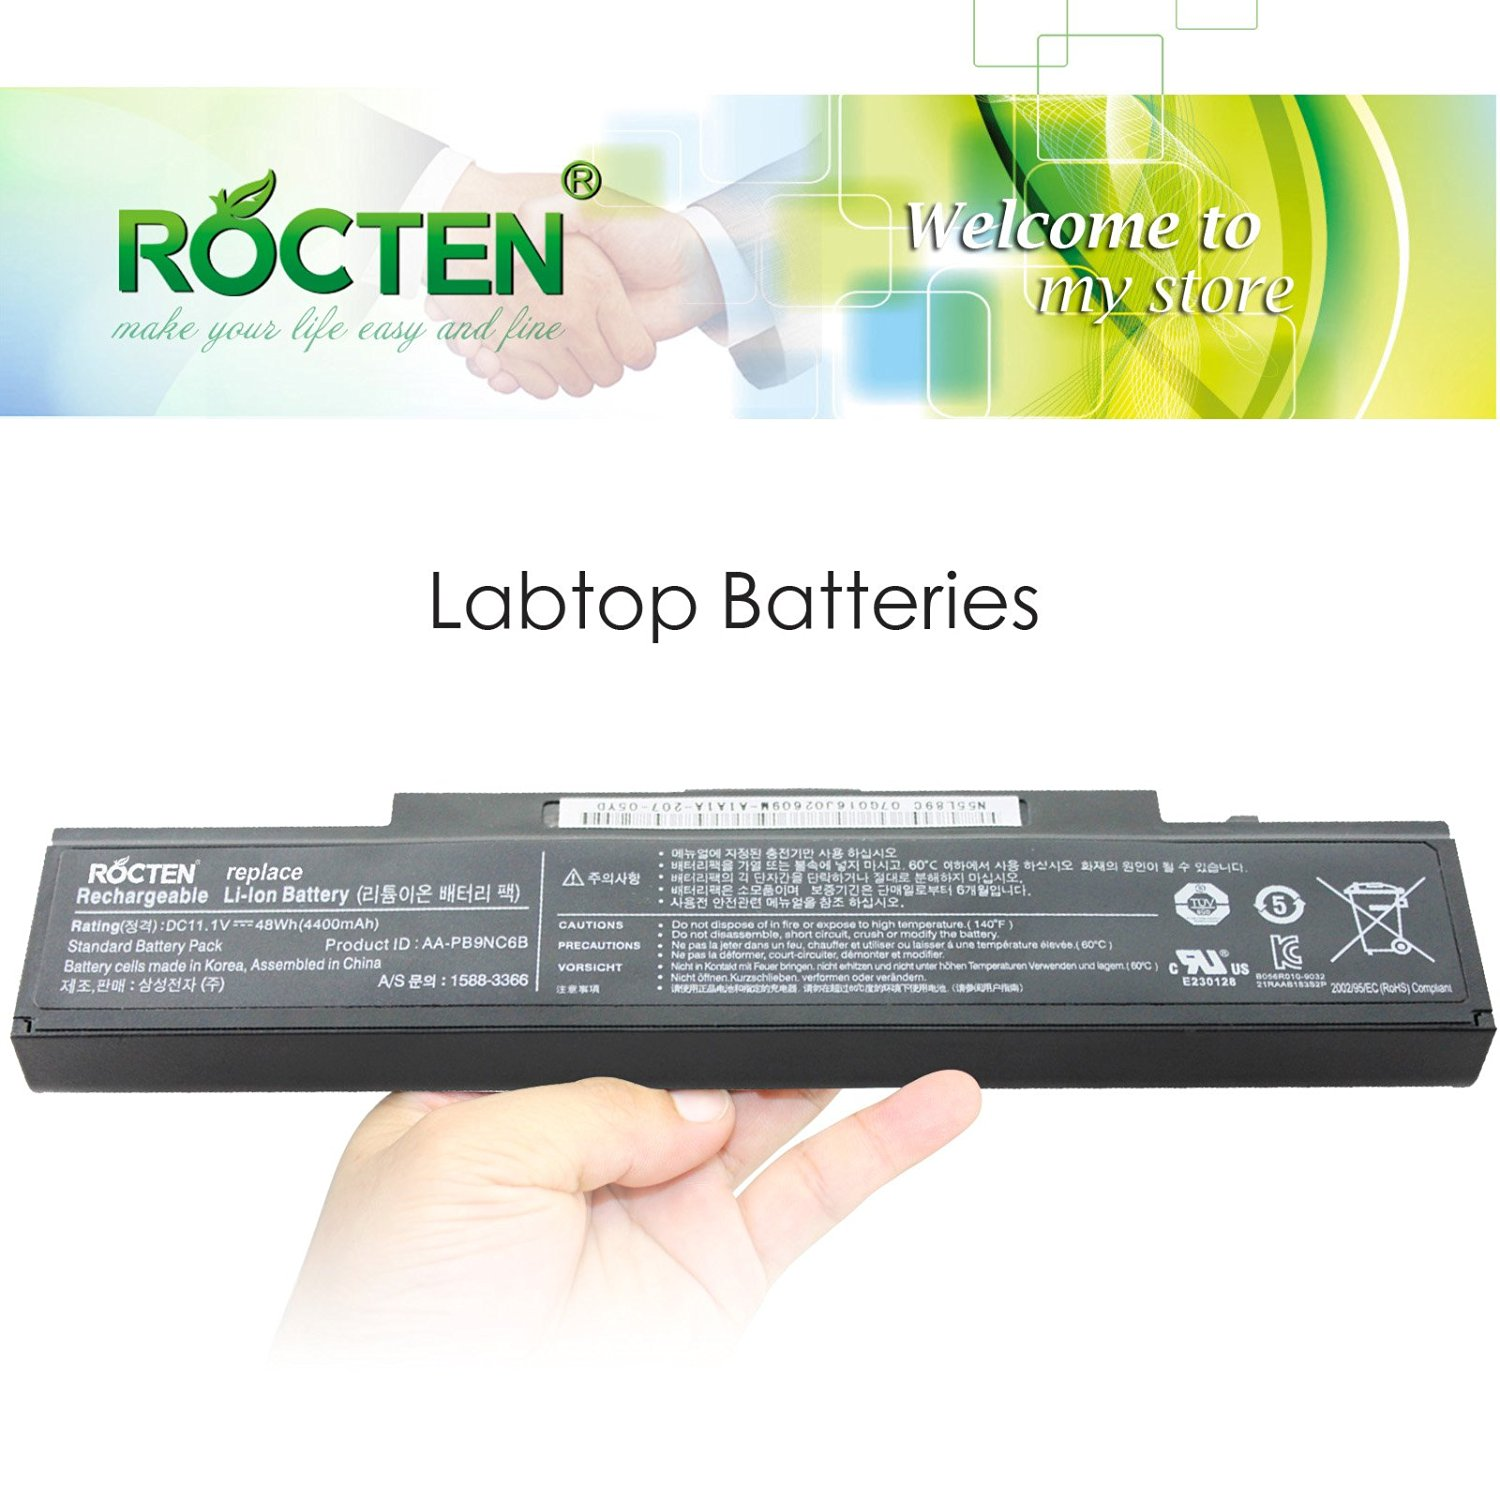 ROCTEN™New Replacement Laptop Battery for Samsung R420 R430 R468 R470 R480 RV510 RV511 RC512 R519 R520 R530 R540 R580 R730 Q320 Q430 Laptop Battery - Premium Superb Choice? 6-cell Li-ion battery